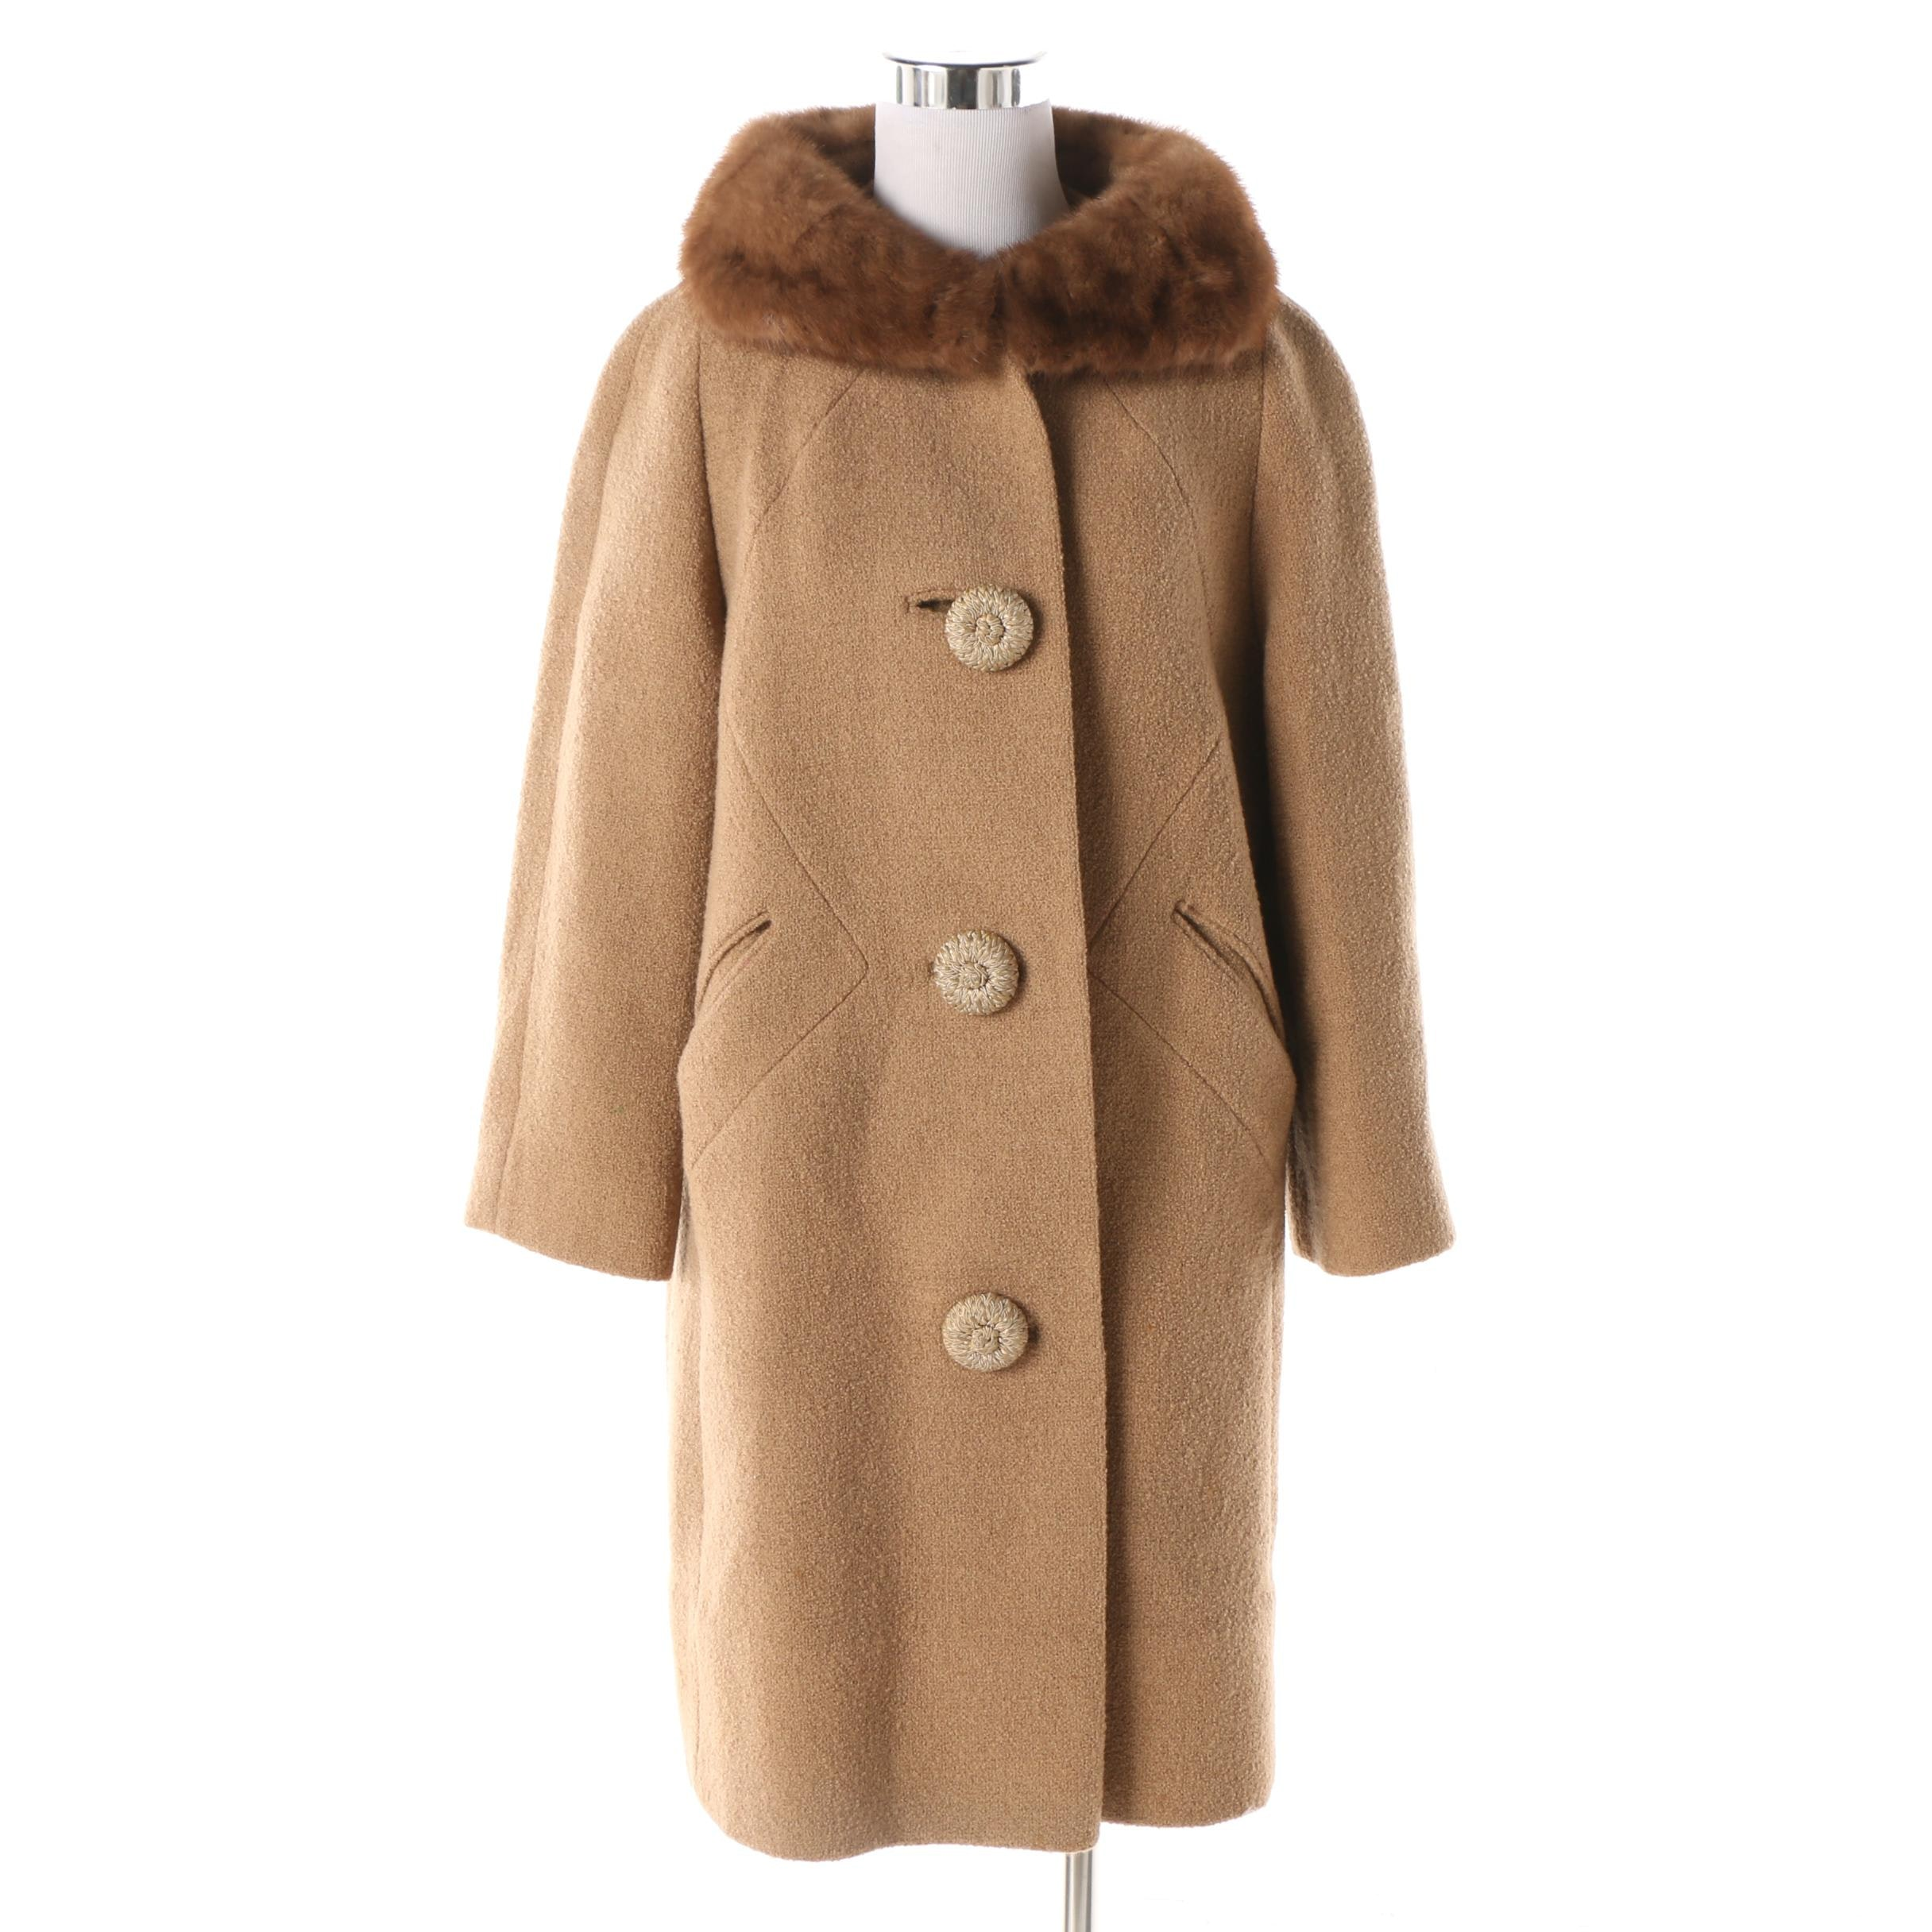 Women's 1960s Vintage Wool Blend Tan Coat with Mink Fur Collar